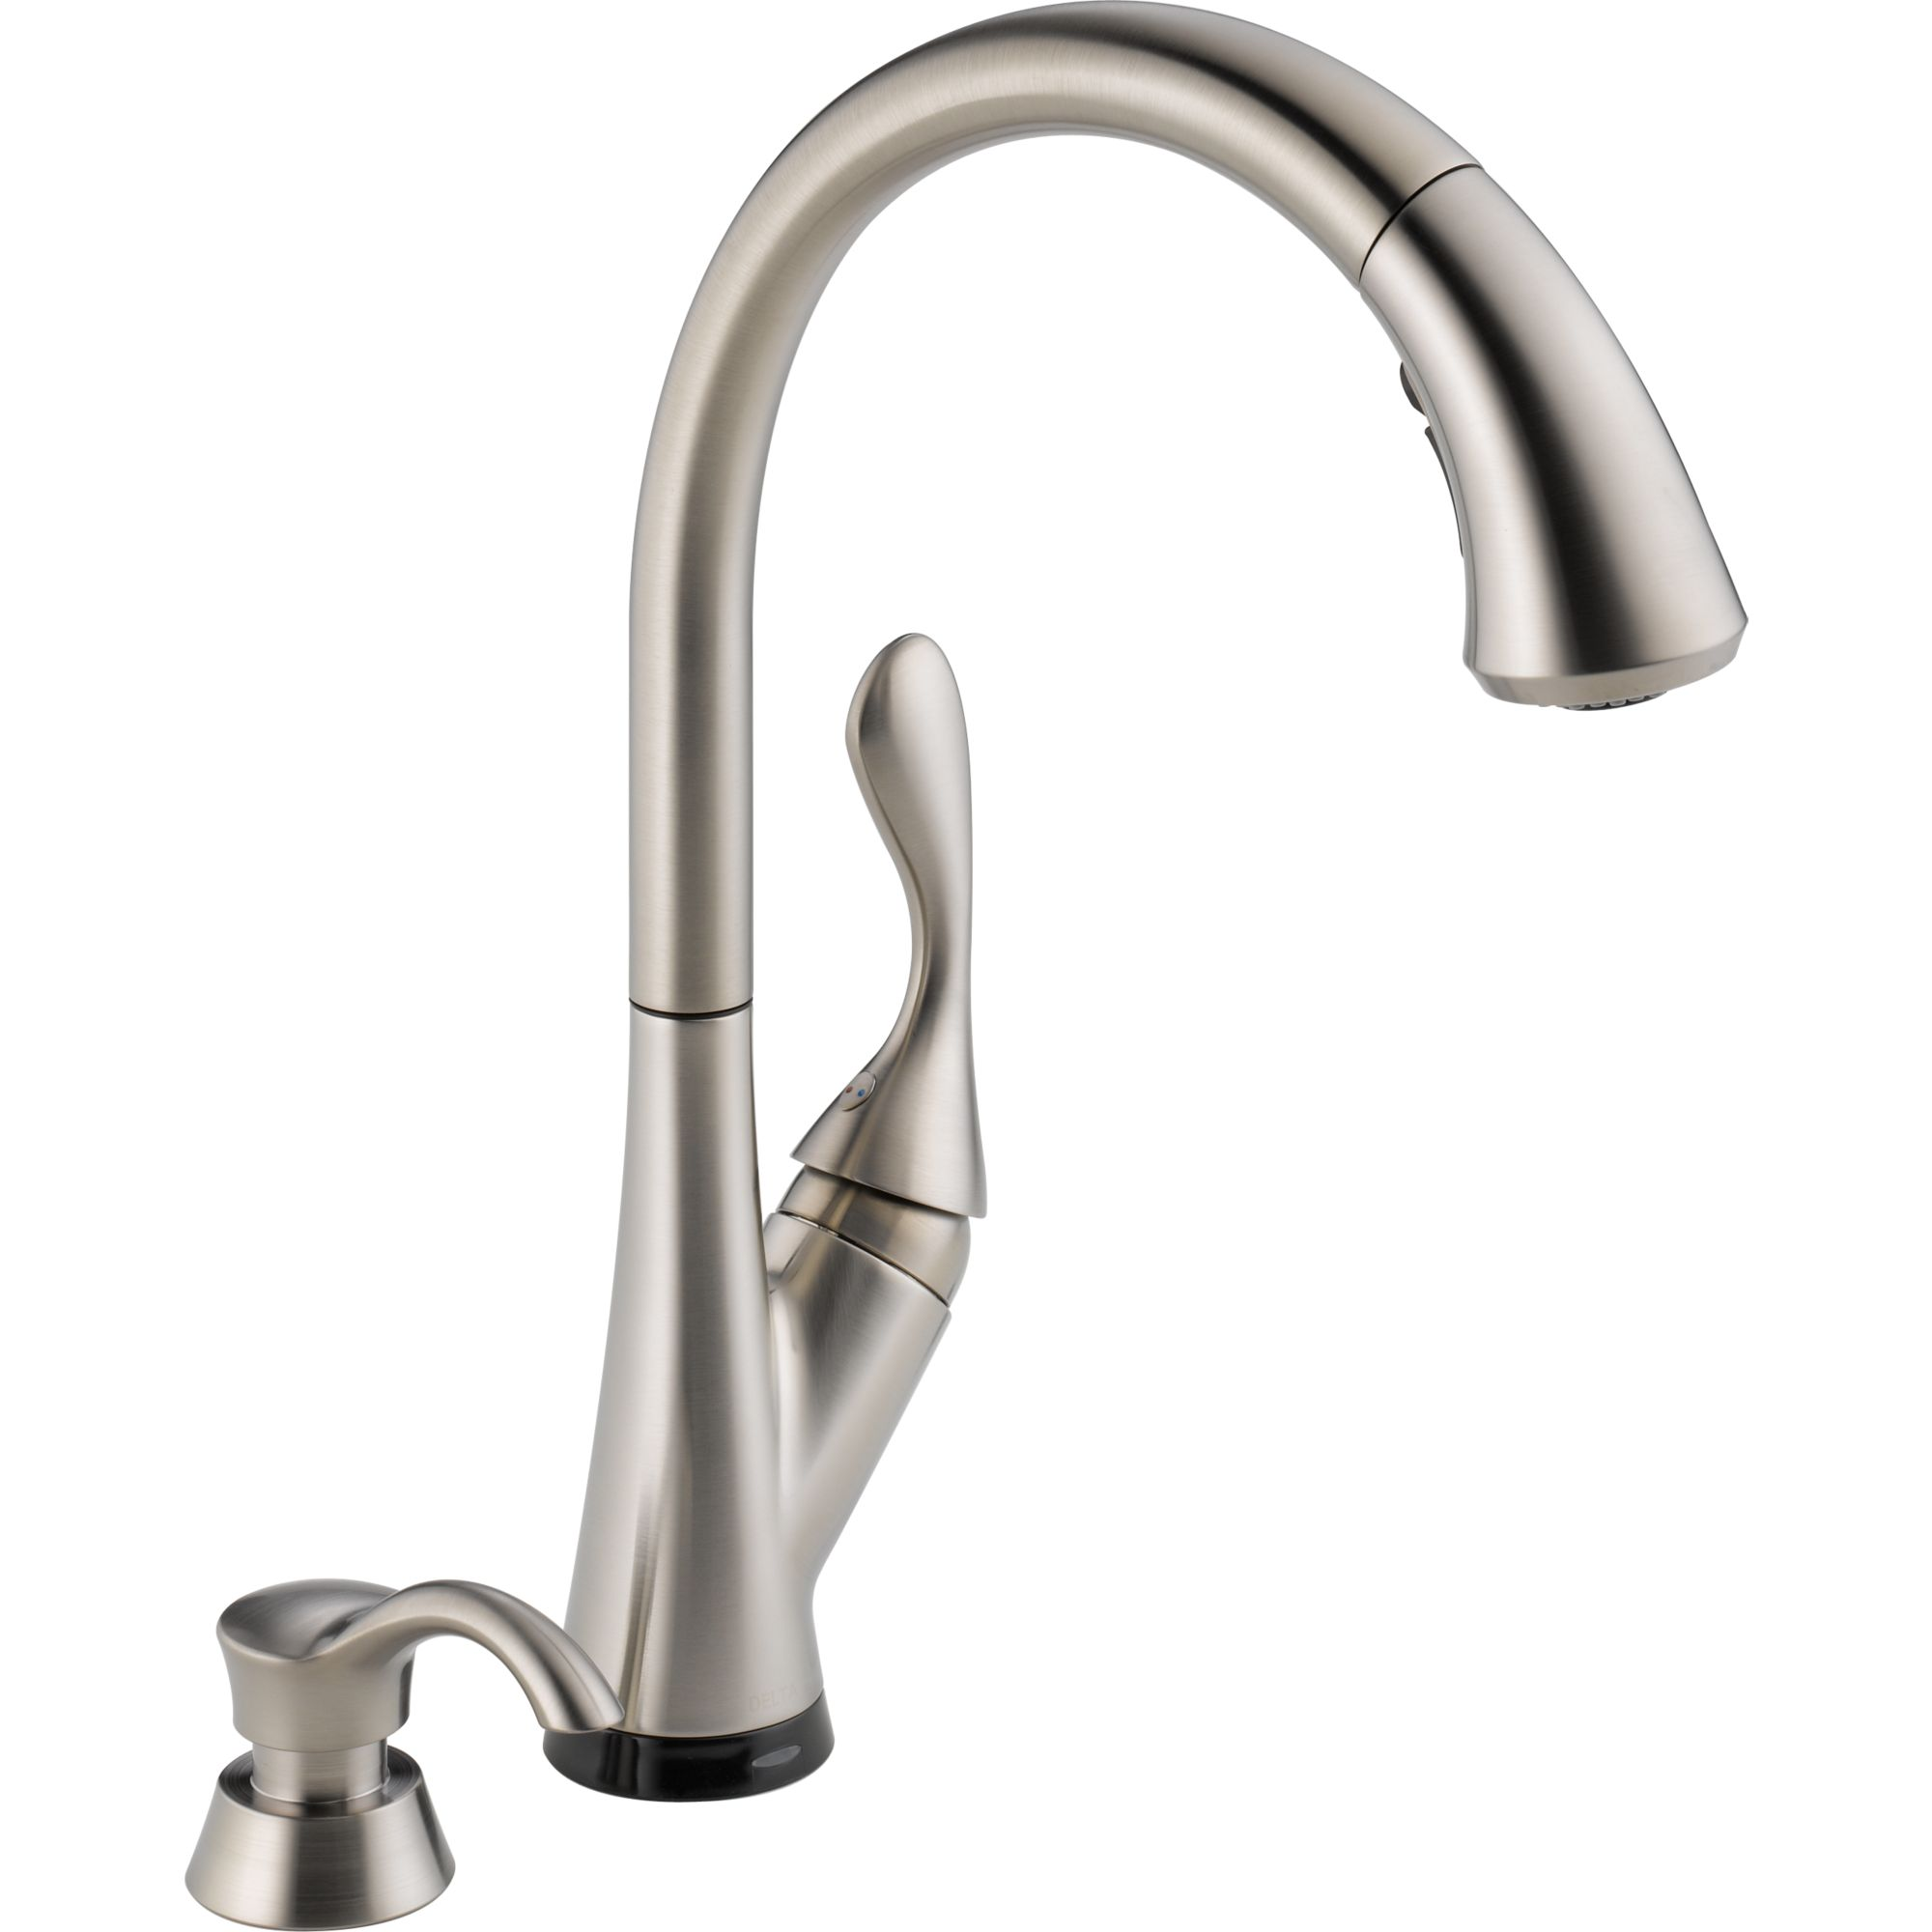 american pull faucets selectronic hands kitchens faucet stainless kitchen free steel avery down in touchless